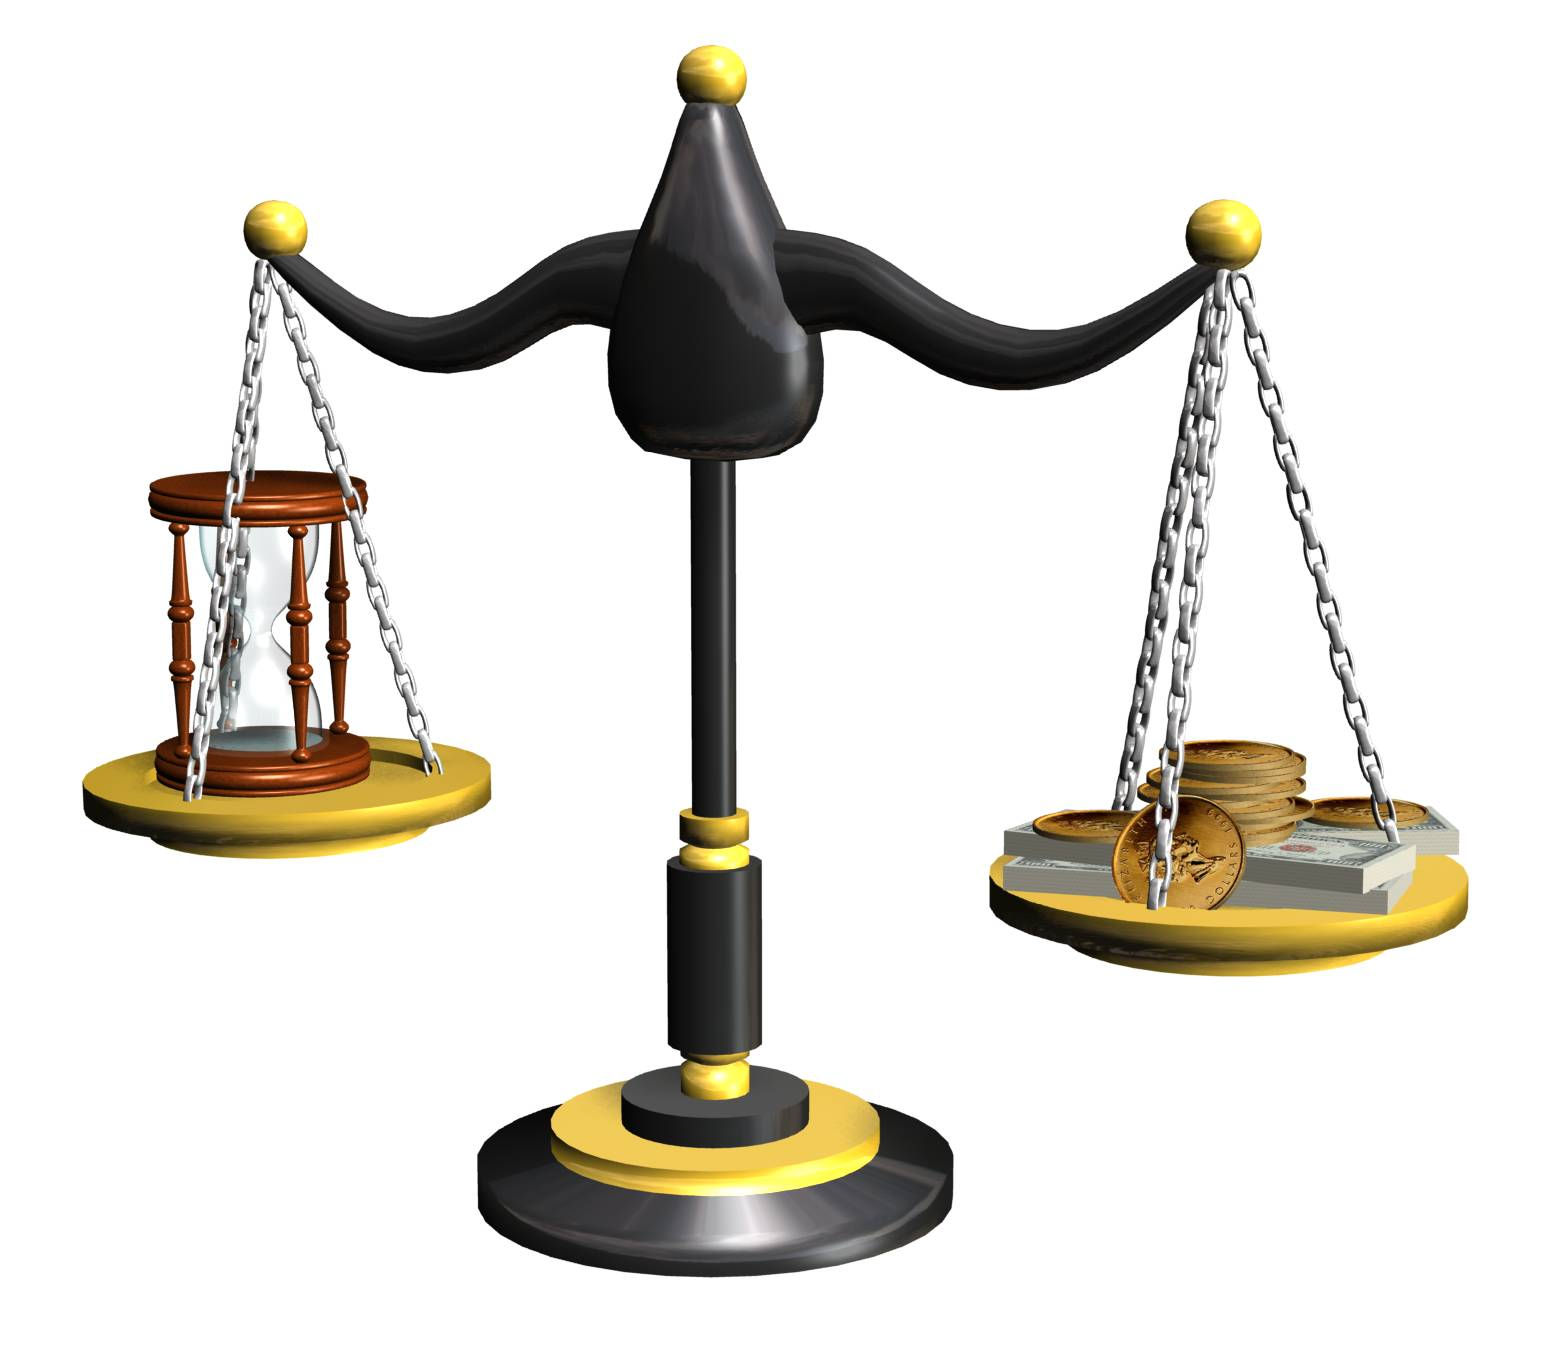 Checks and balances clipart. Diagram image tips scale